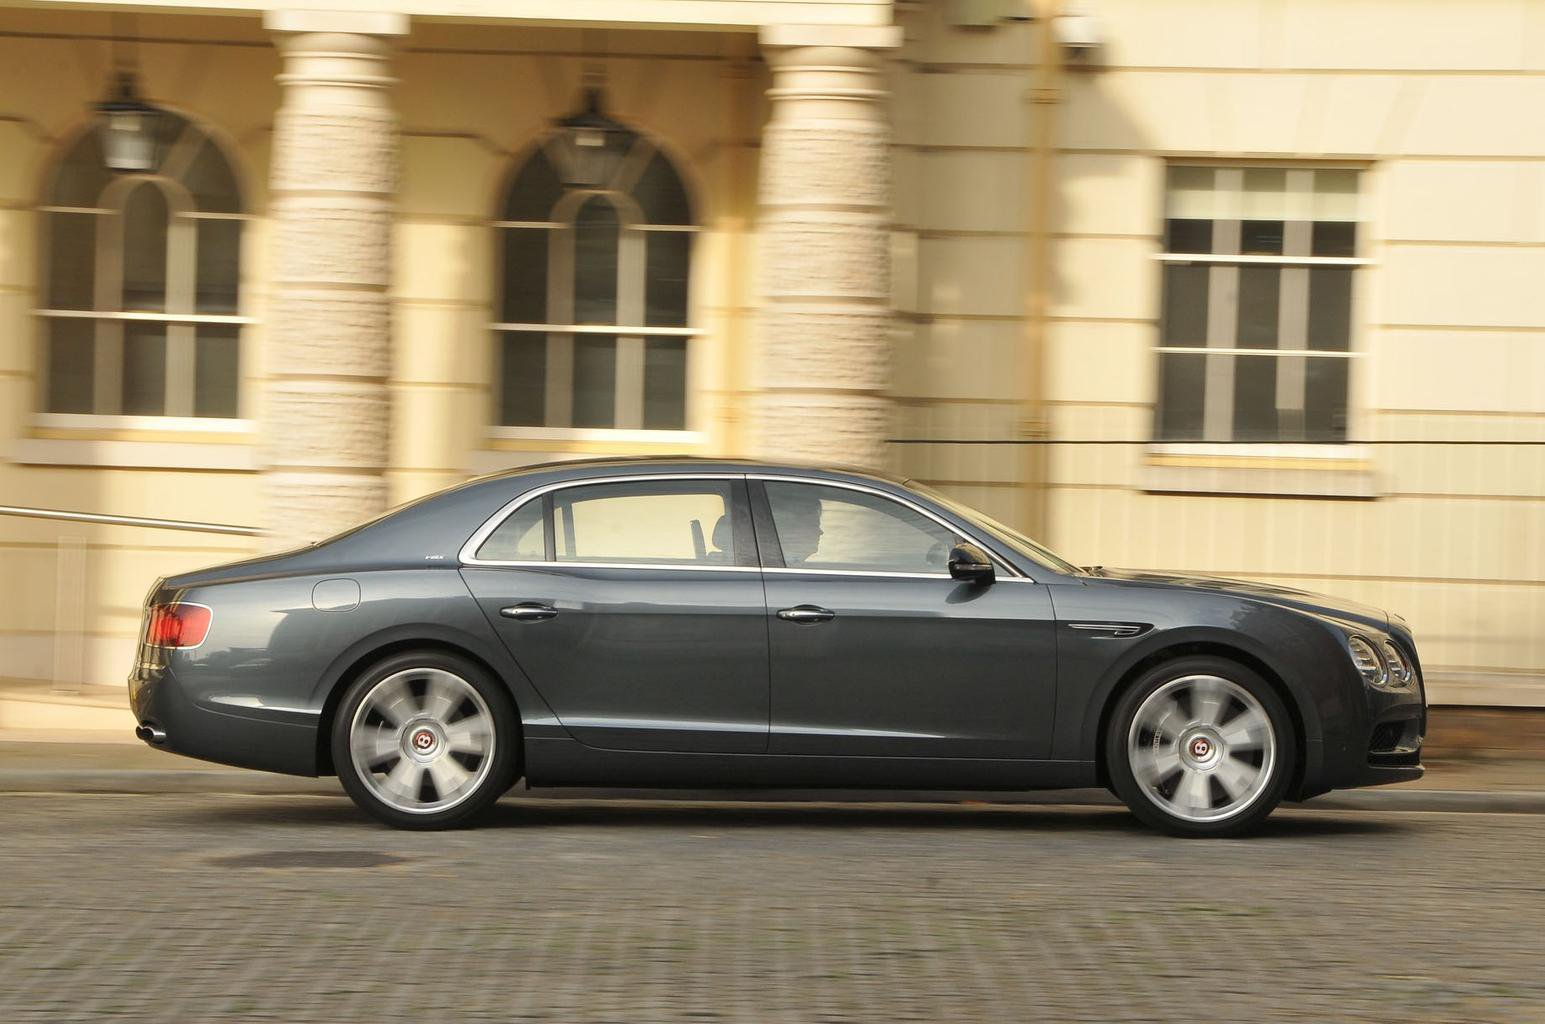 Used Bentley Flying Spur 13-present